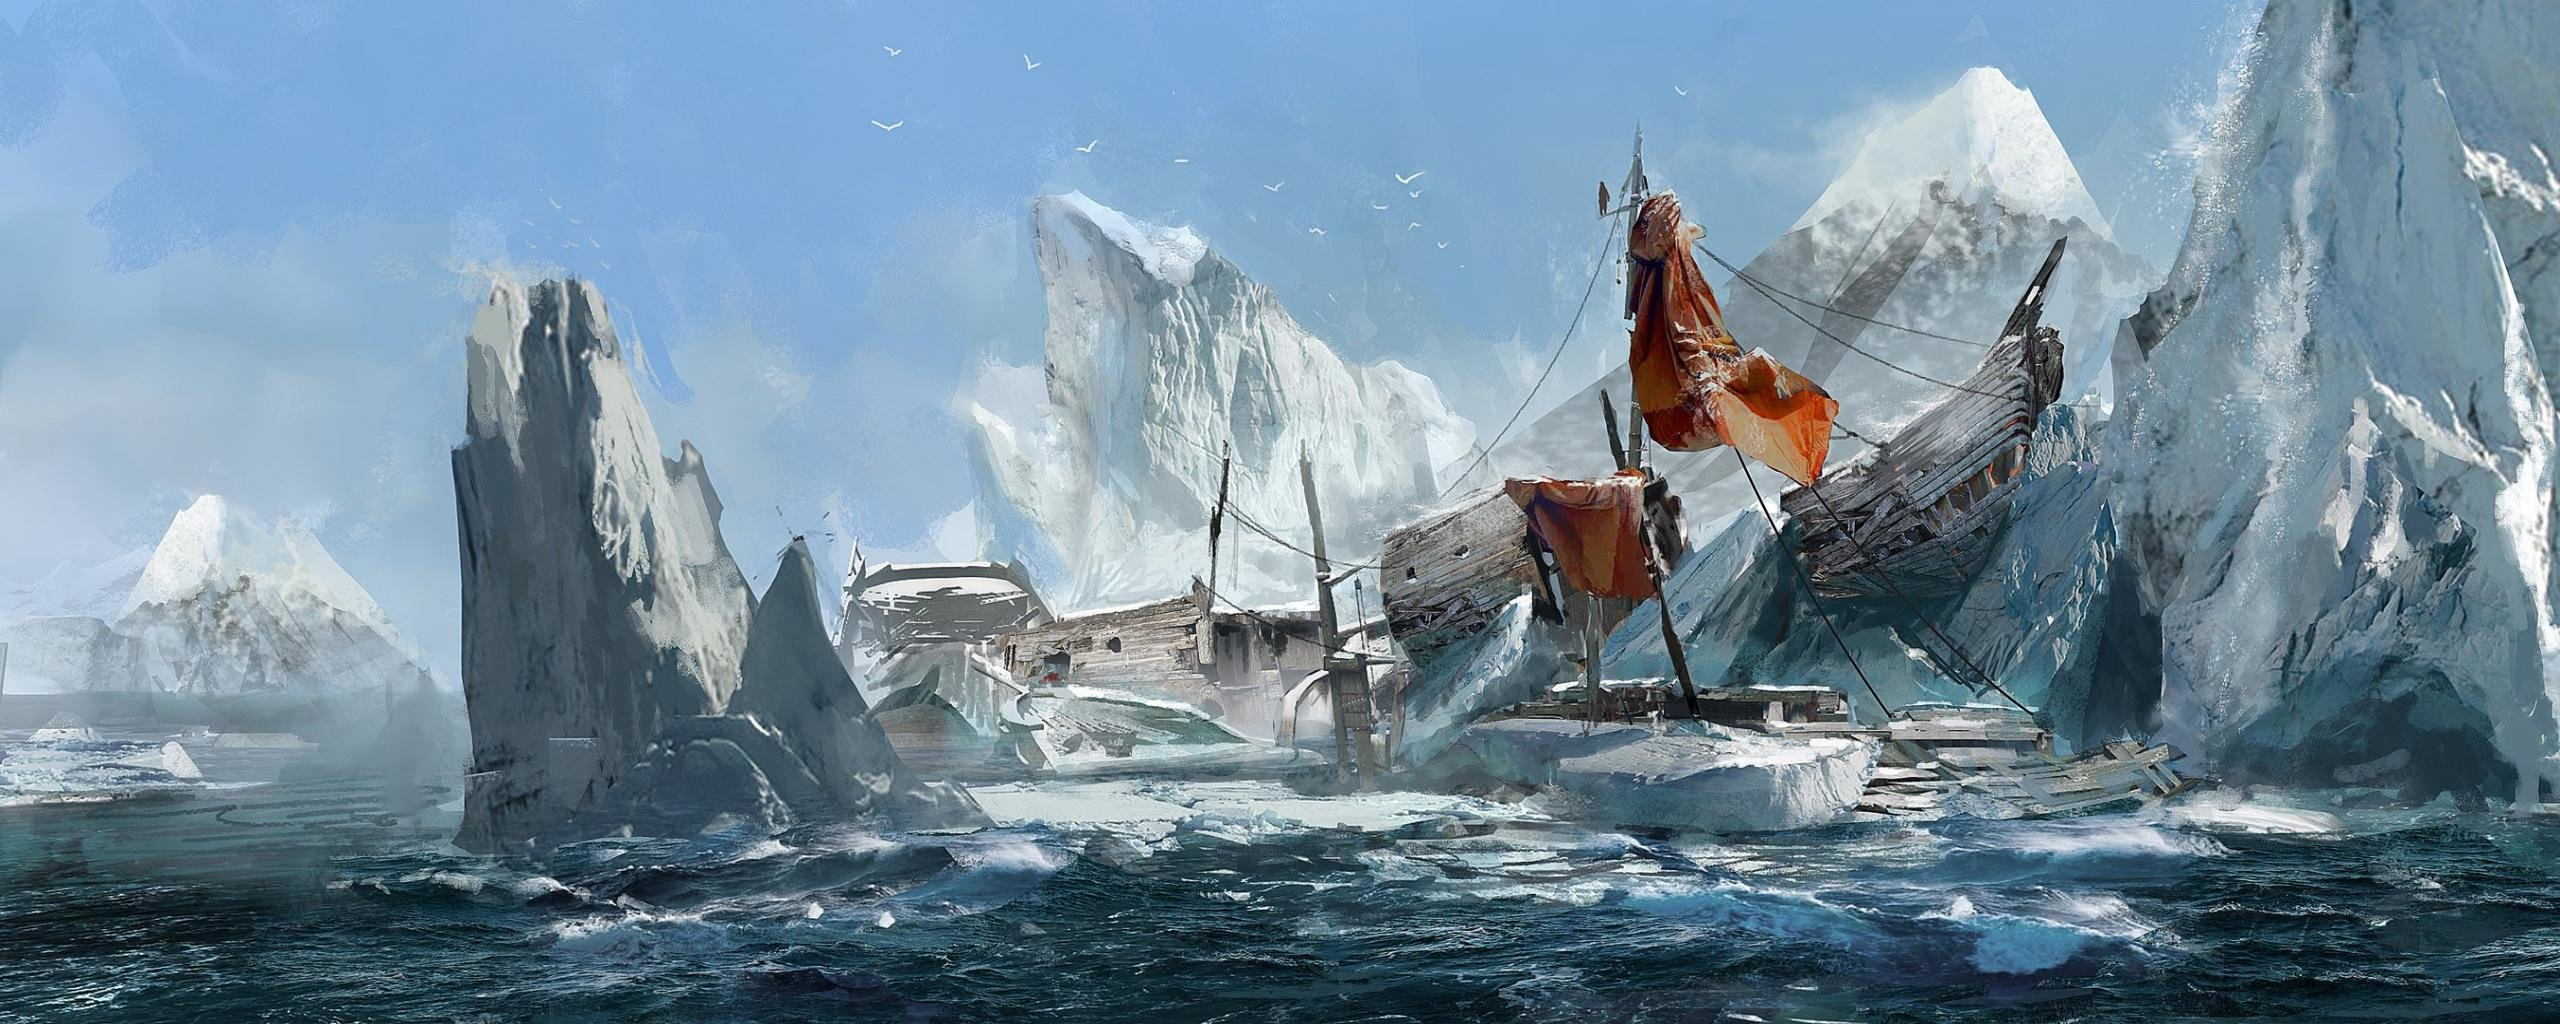 Dual Monitor Assassin S Creed Rogue Wallpapers Hd Backgrounds